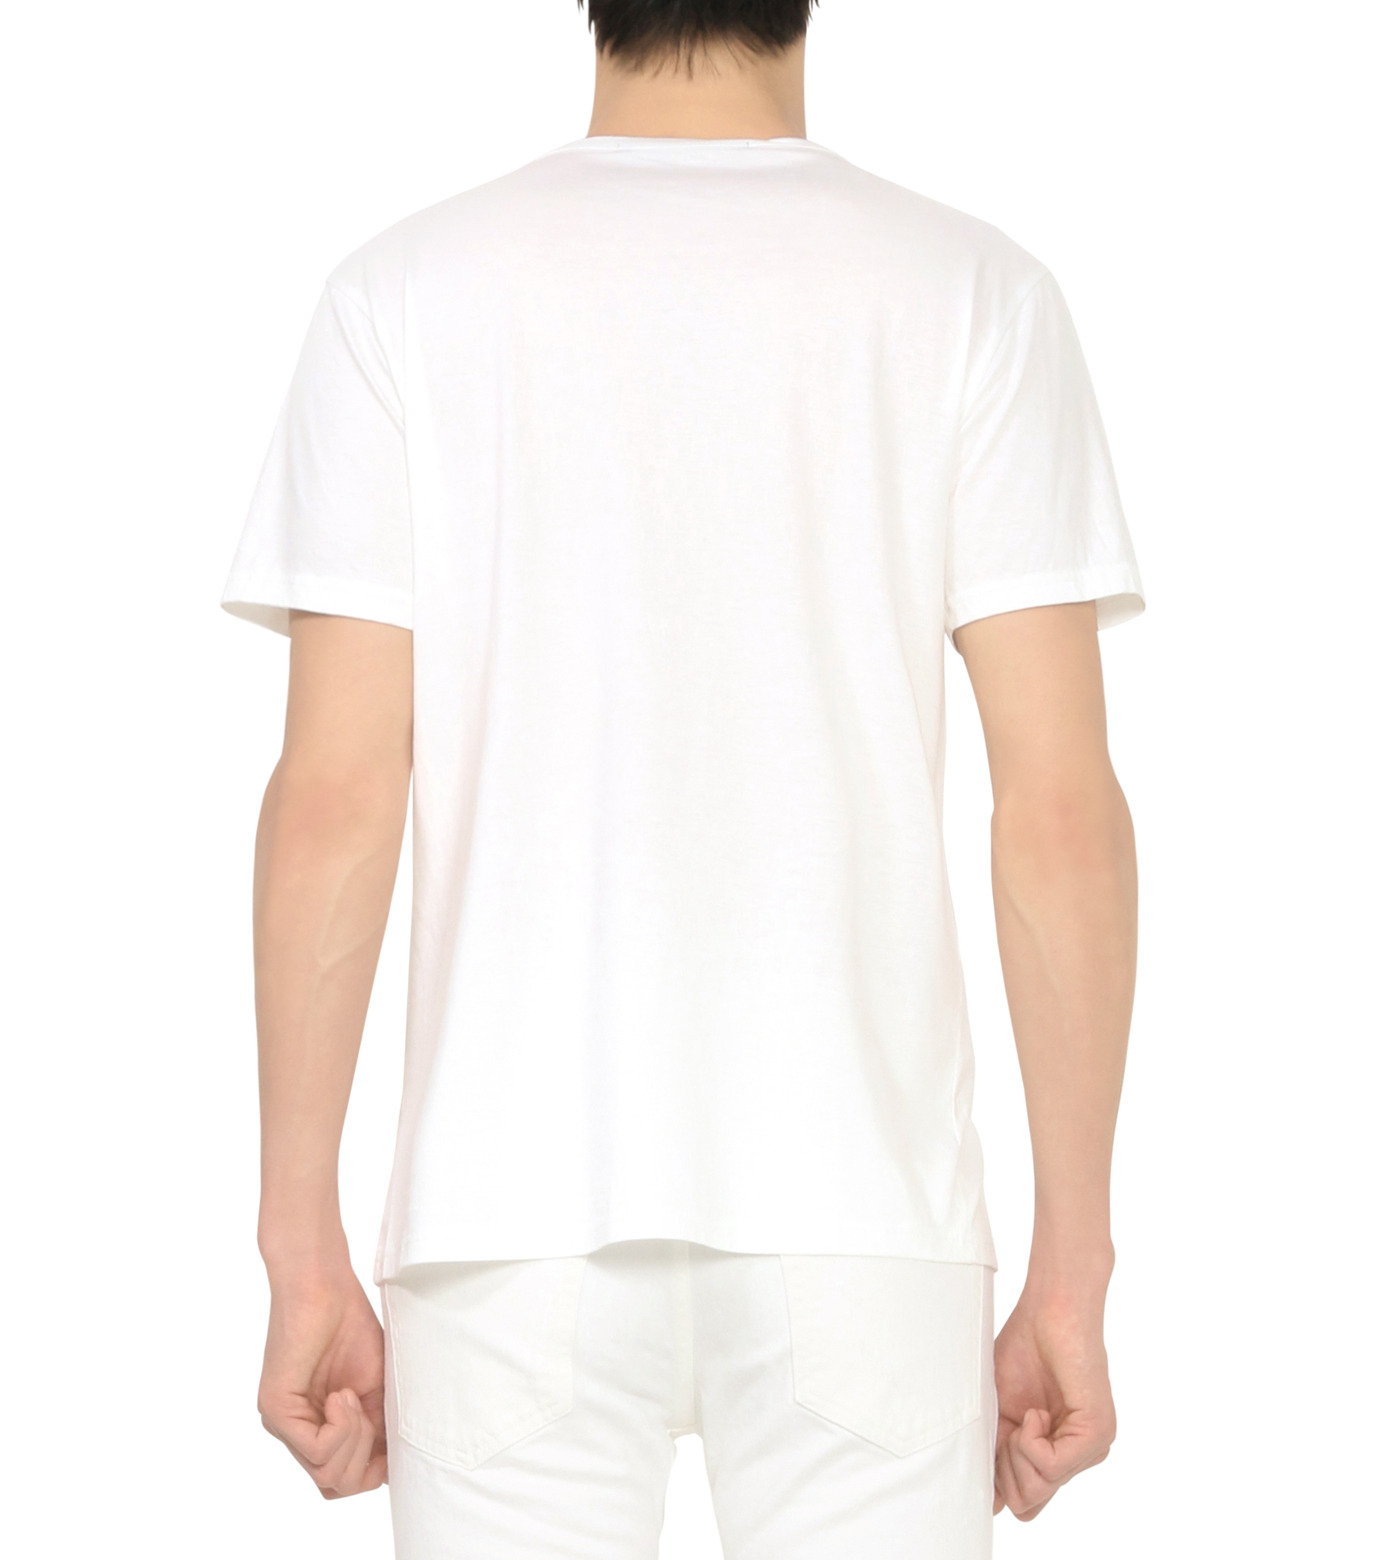 HL HEDDIE LOVU(エイチエル・エディールーヴ)のNOTHING pt TEE-WHITE(カットソー/cut and sewn)-18S92011-4 拡大詳細画像3